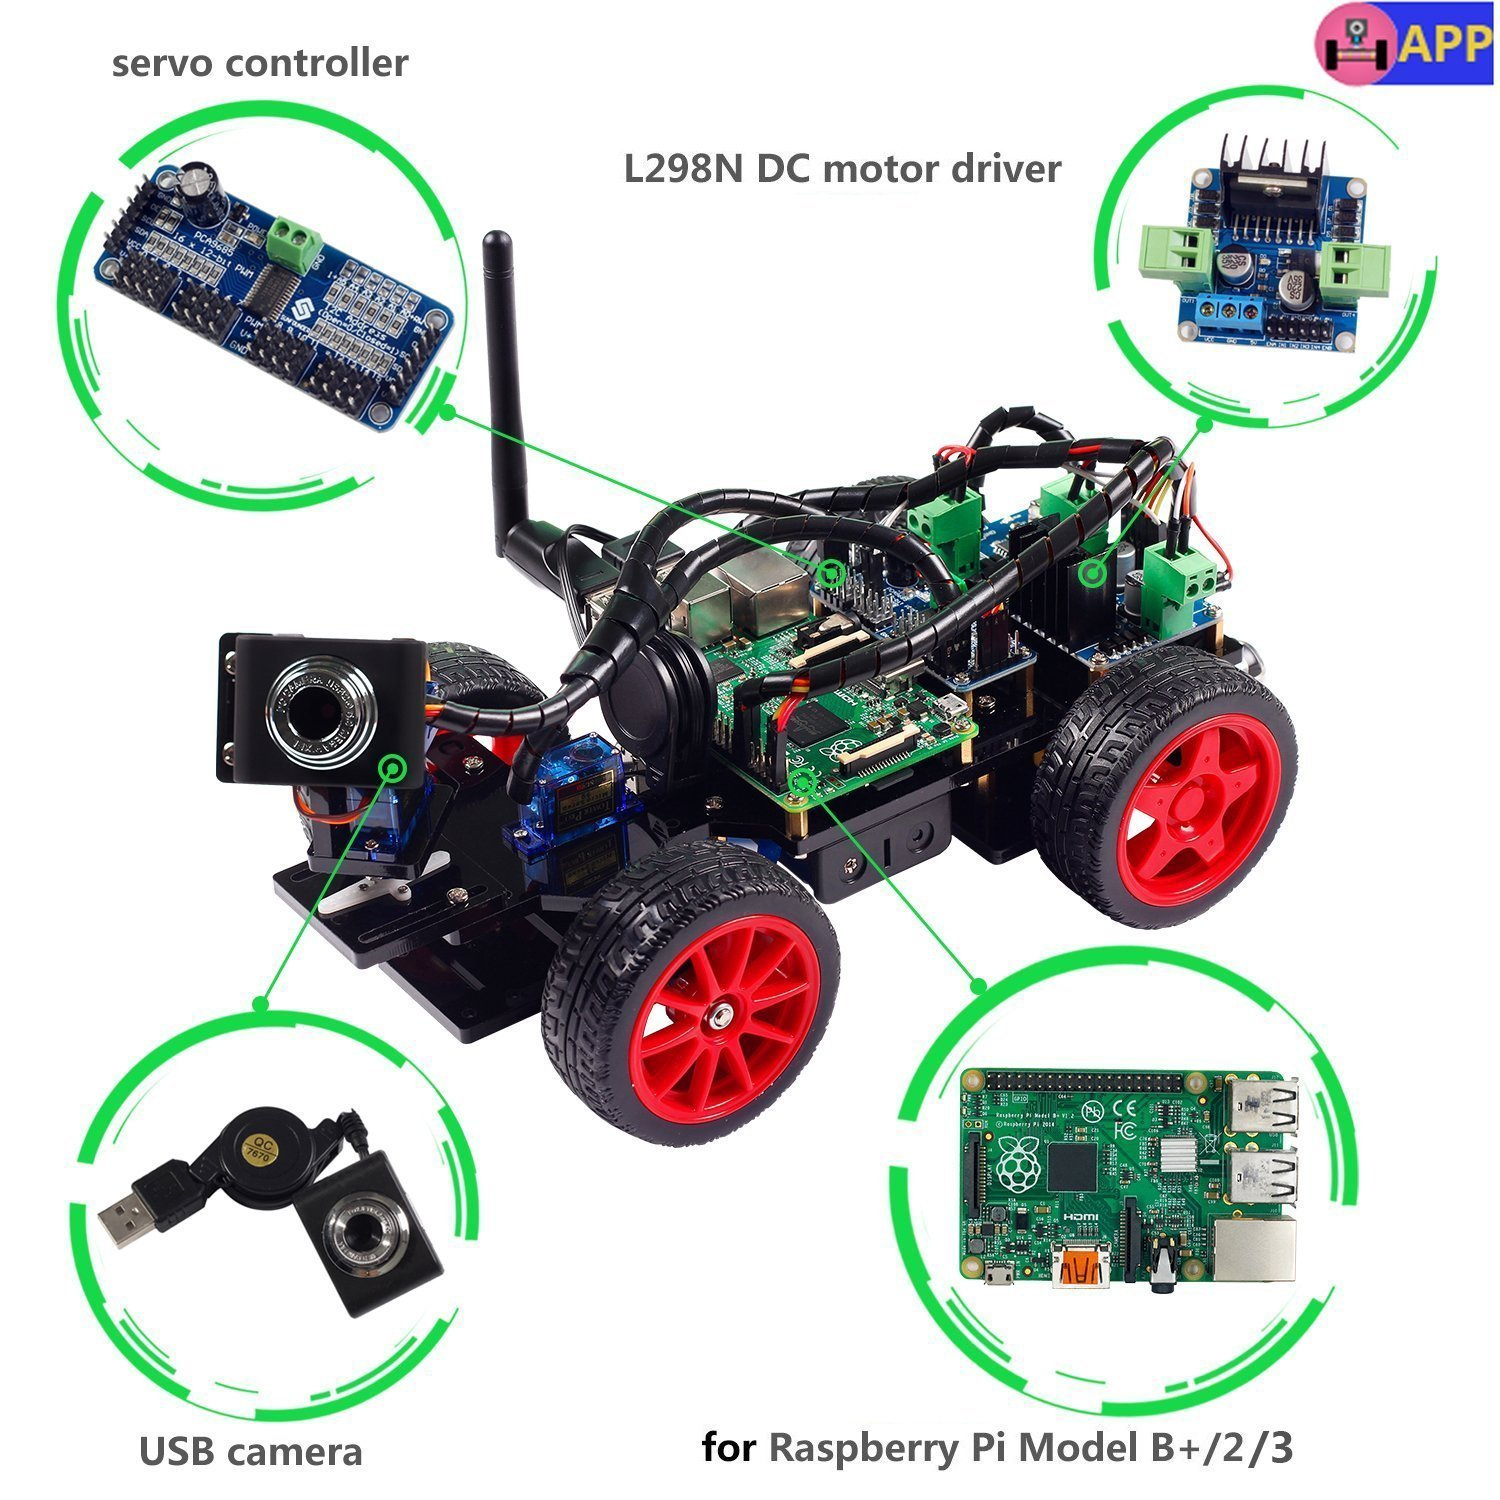 SunFounder Smart Video Car Kit Raspberry Pi DIY Robot Kit for Kids Adults Compatible with Raspberry Pi 4 Model B 3B+ 3B 2B (Pi Not Included) by SunFounder